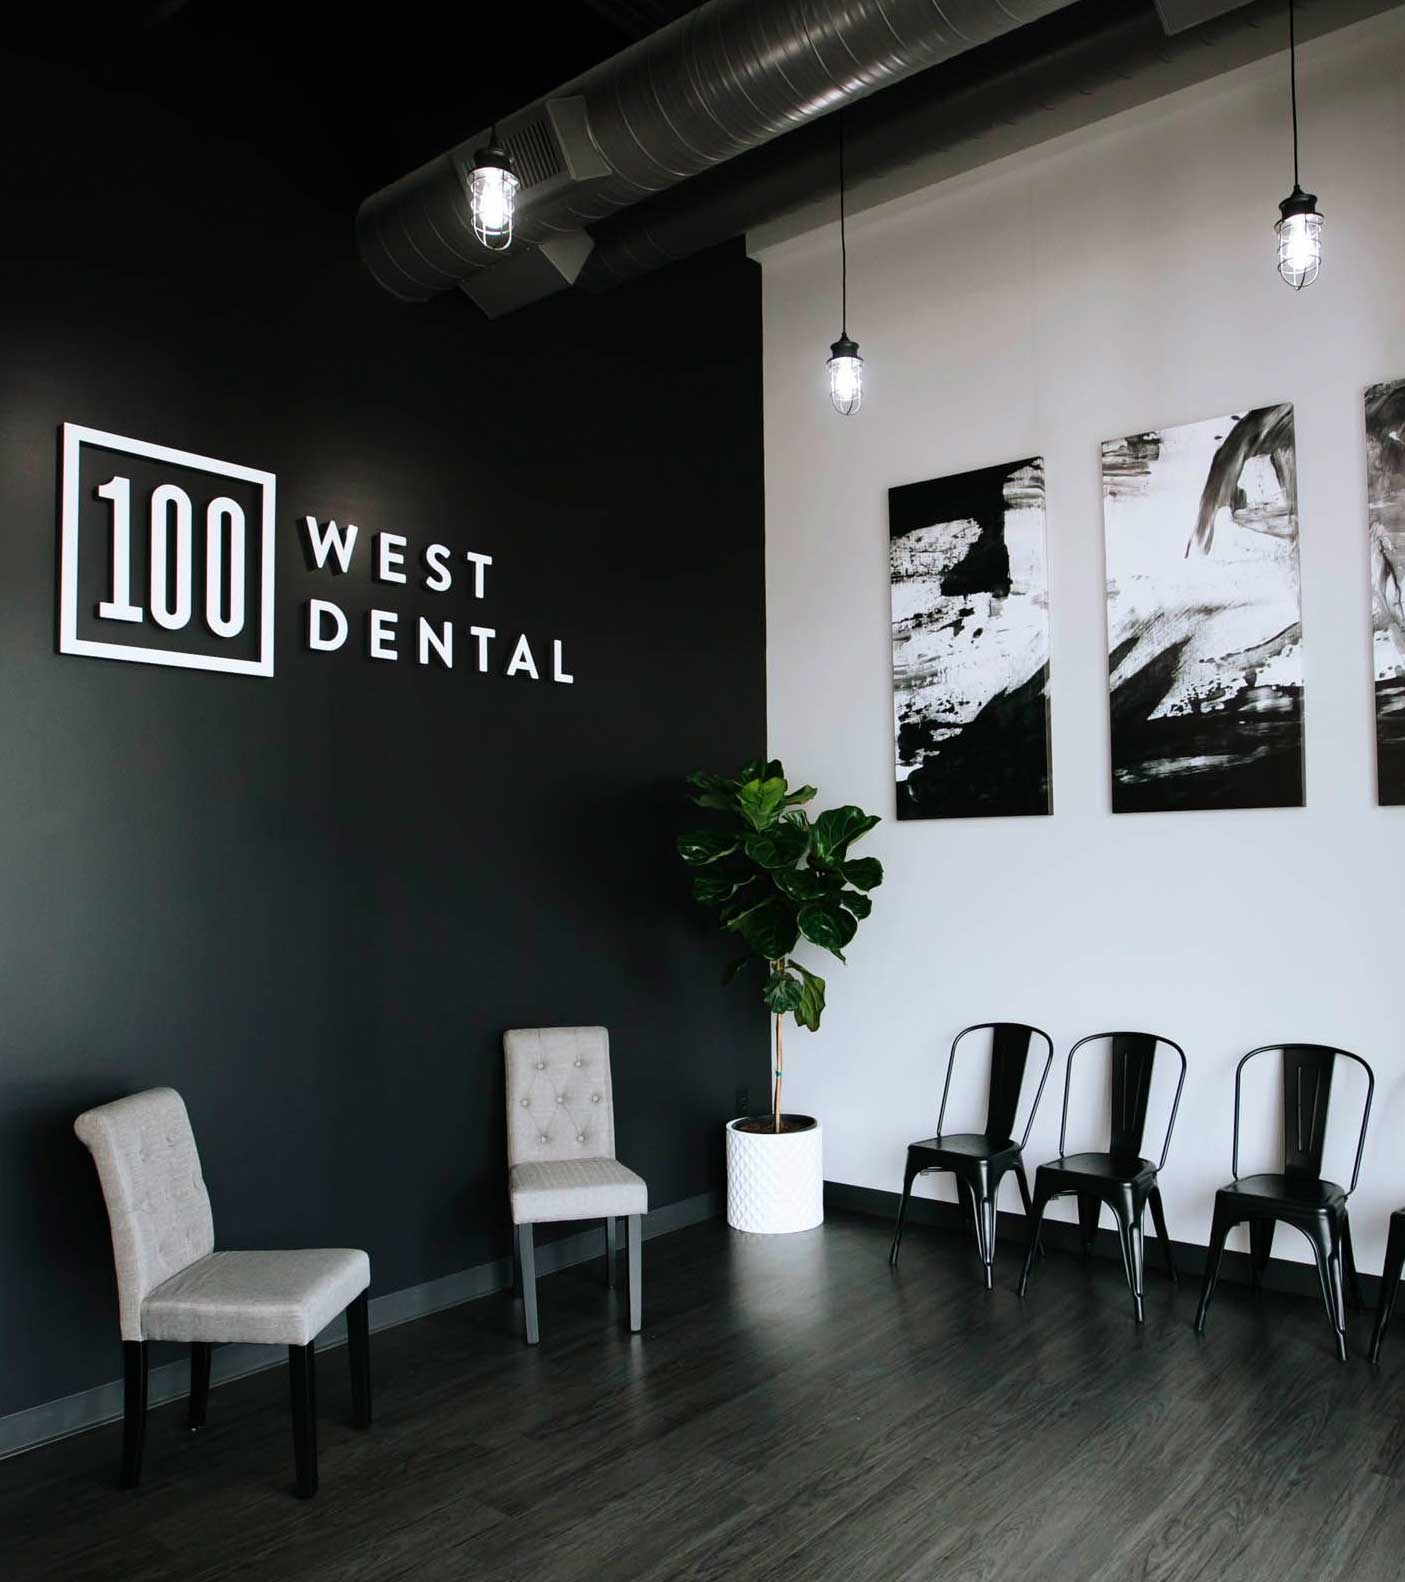 Photo of the 100 West Dental lobby